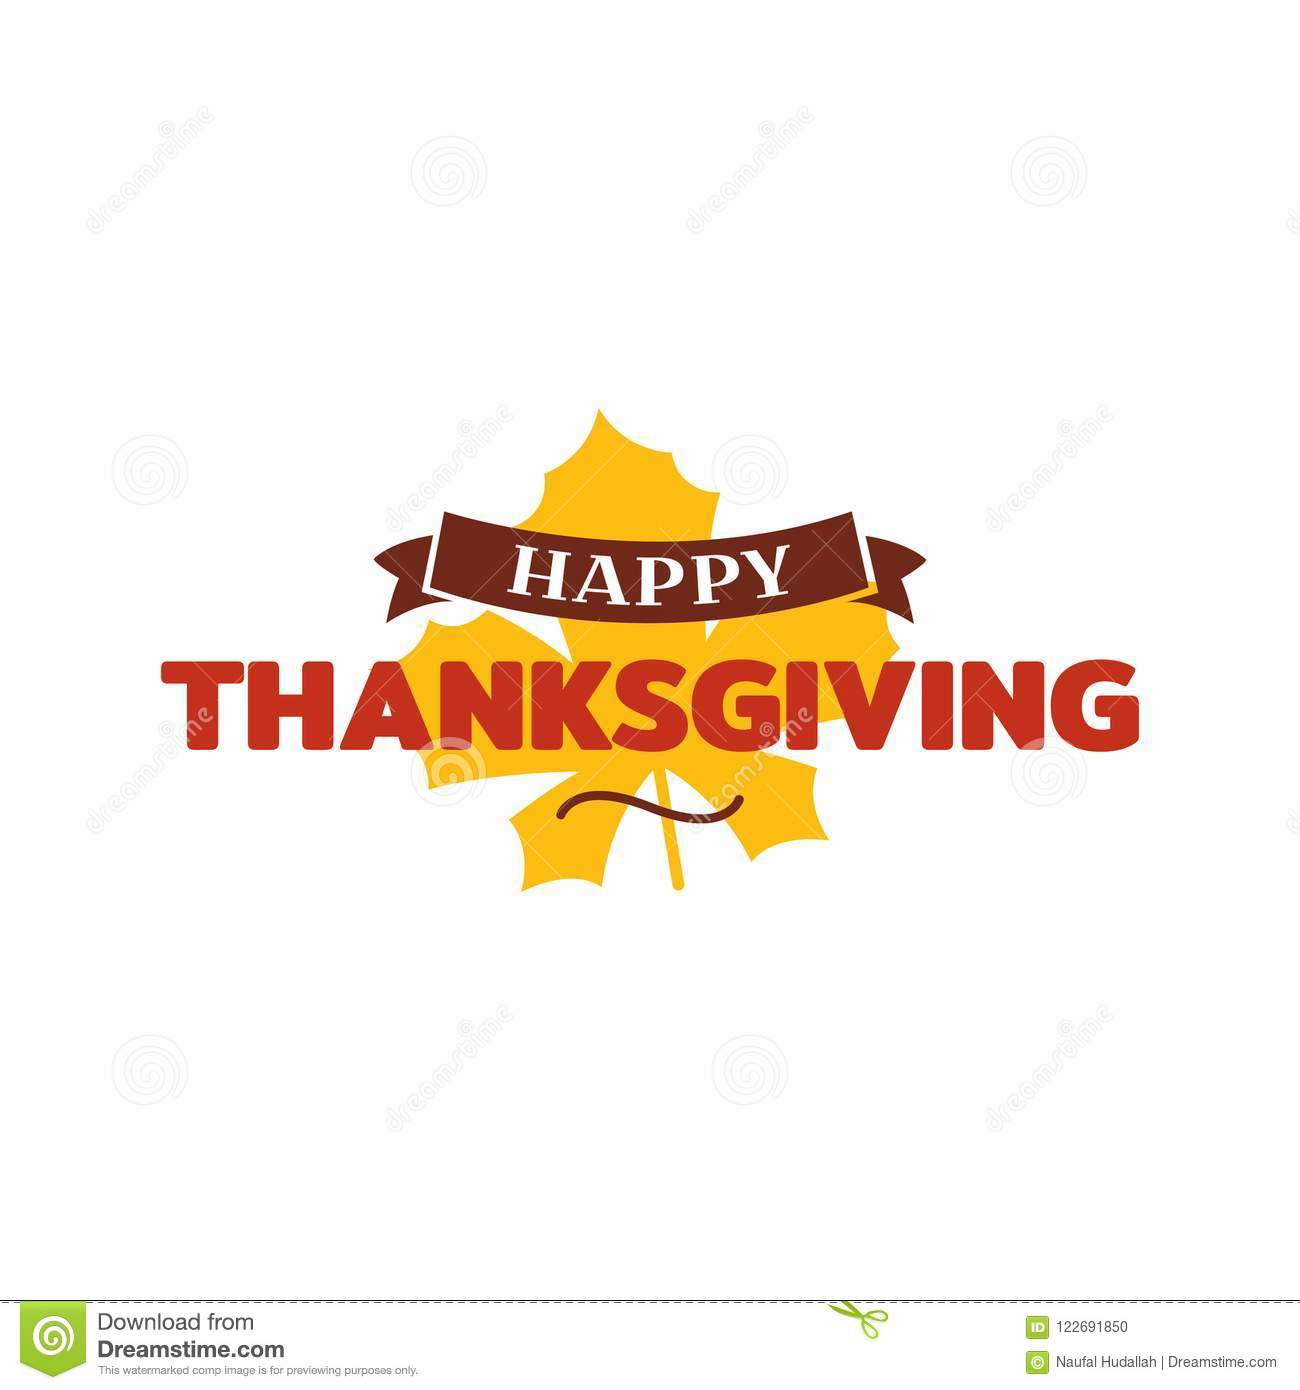 Happy thanksgiving text with dried leave background. Autumn fall typography design.